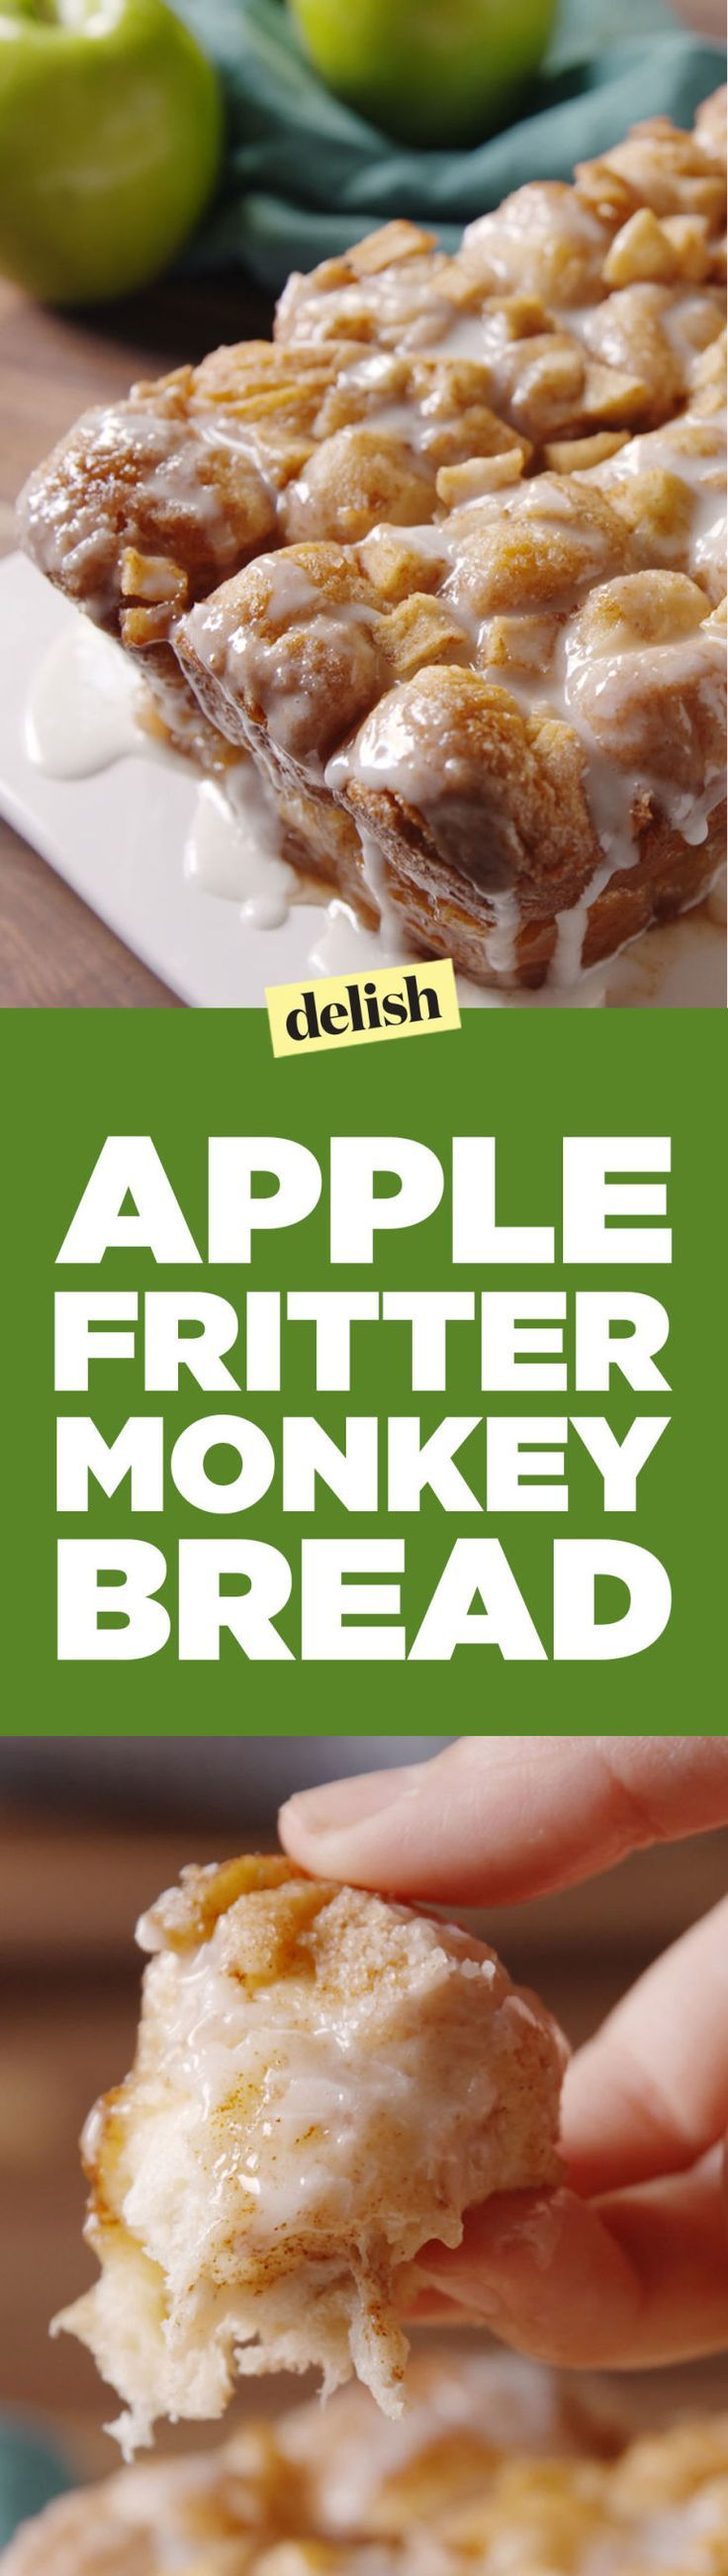 Apple Fritter Monkey Bread - http://Delish.com More